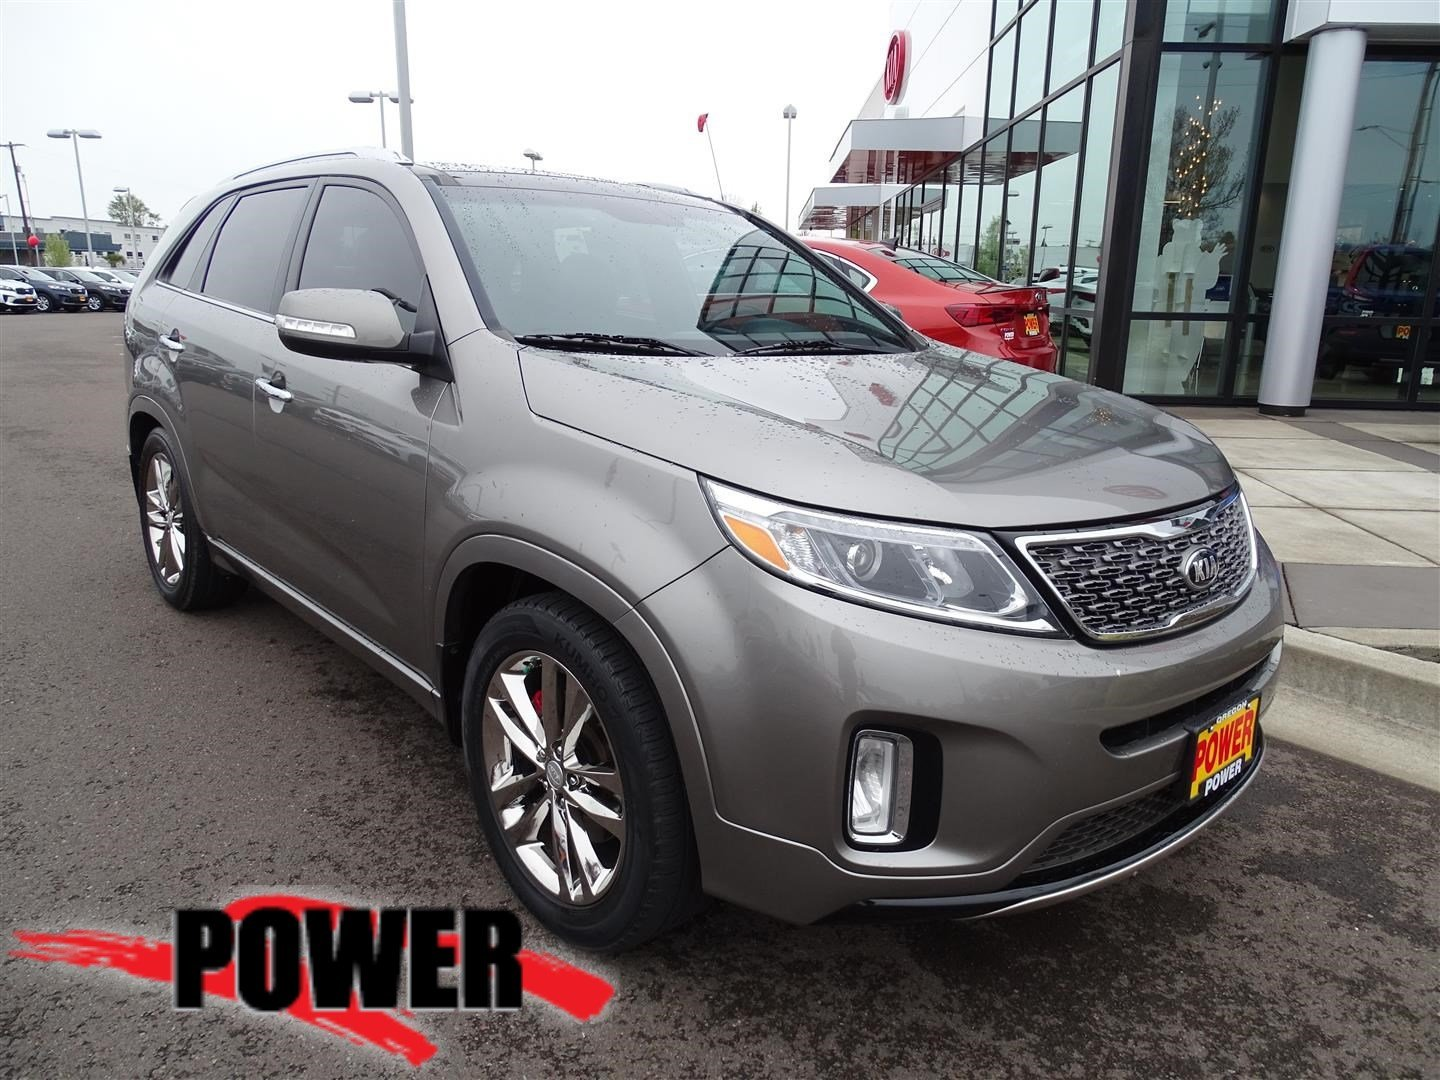 Pre-Owned 2014 Kia Sorento SX Limited